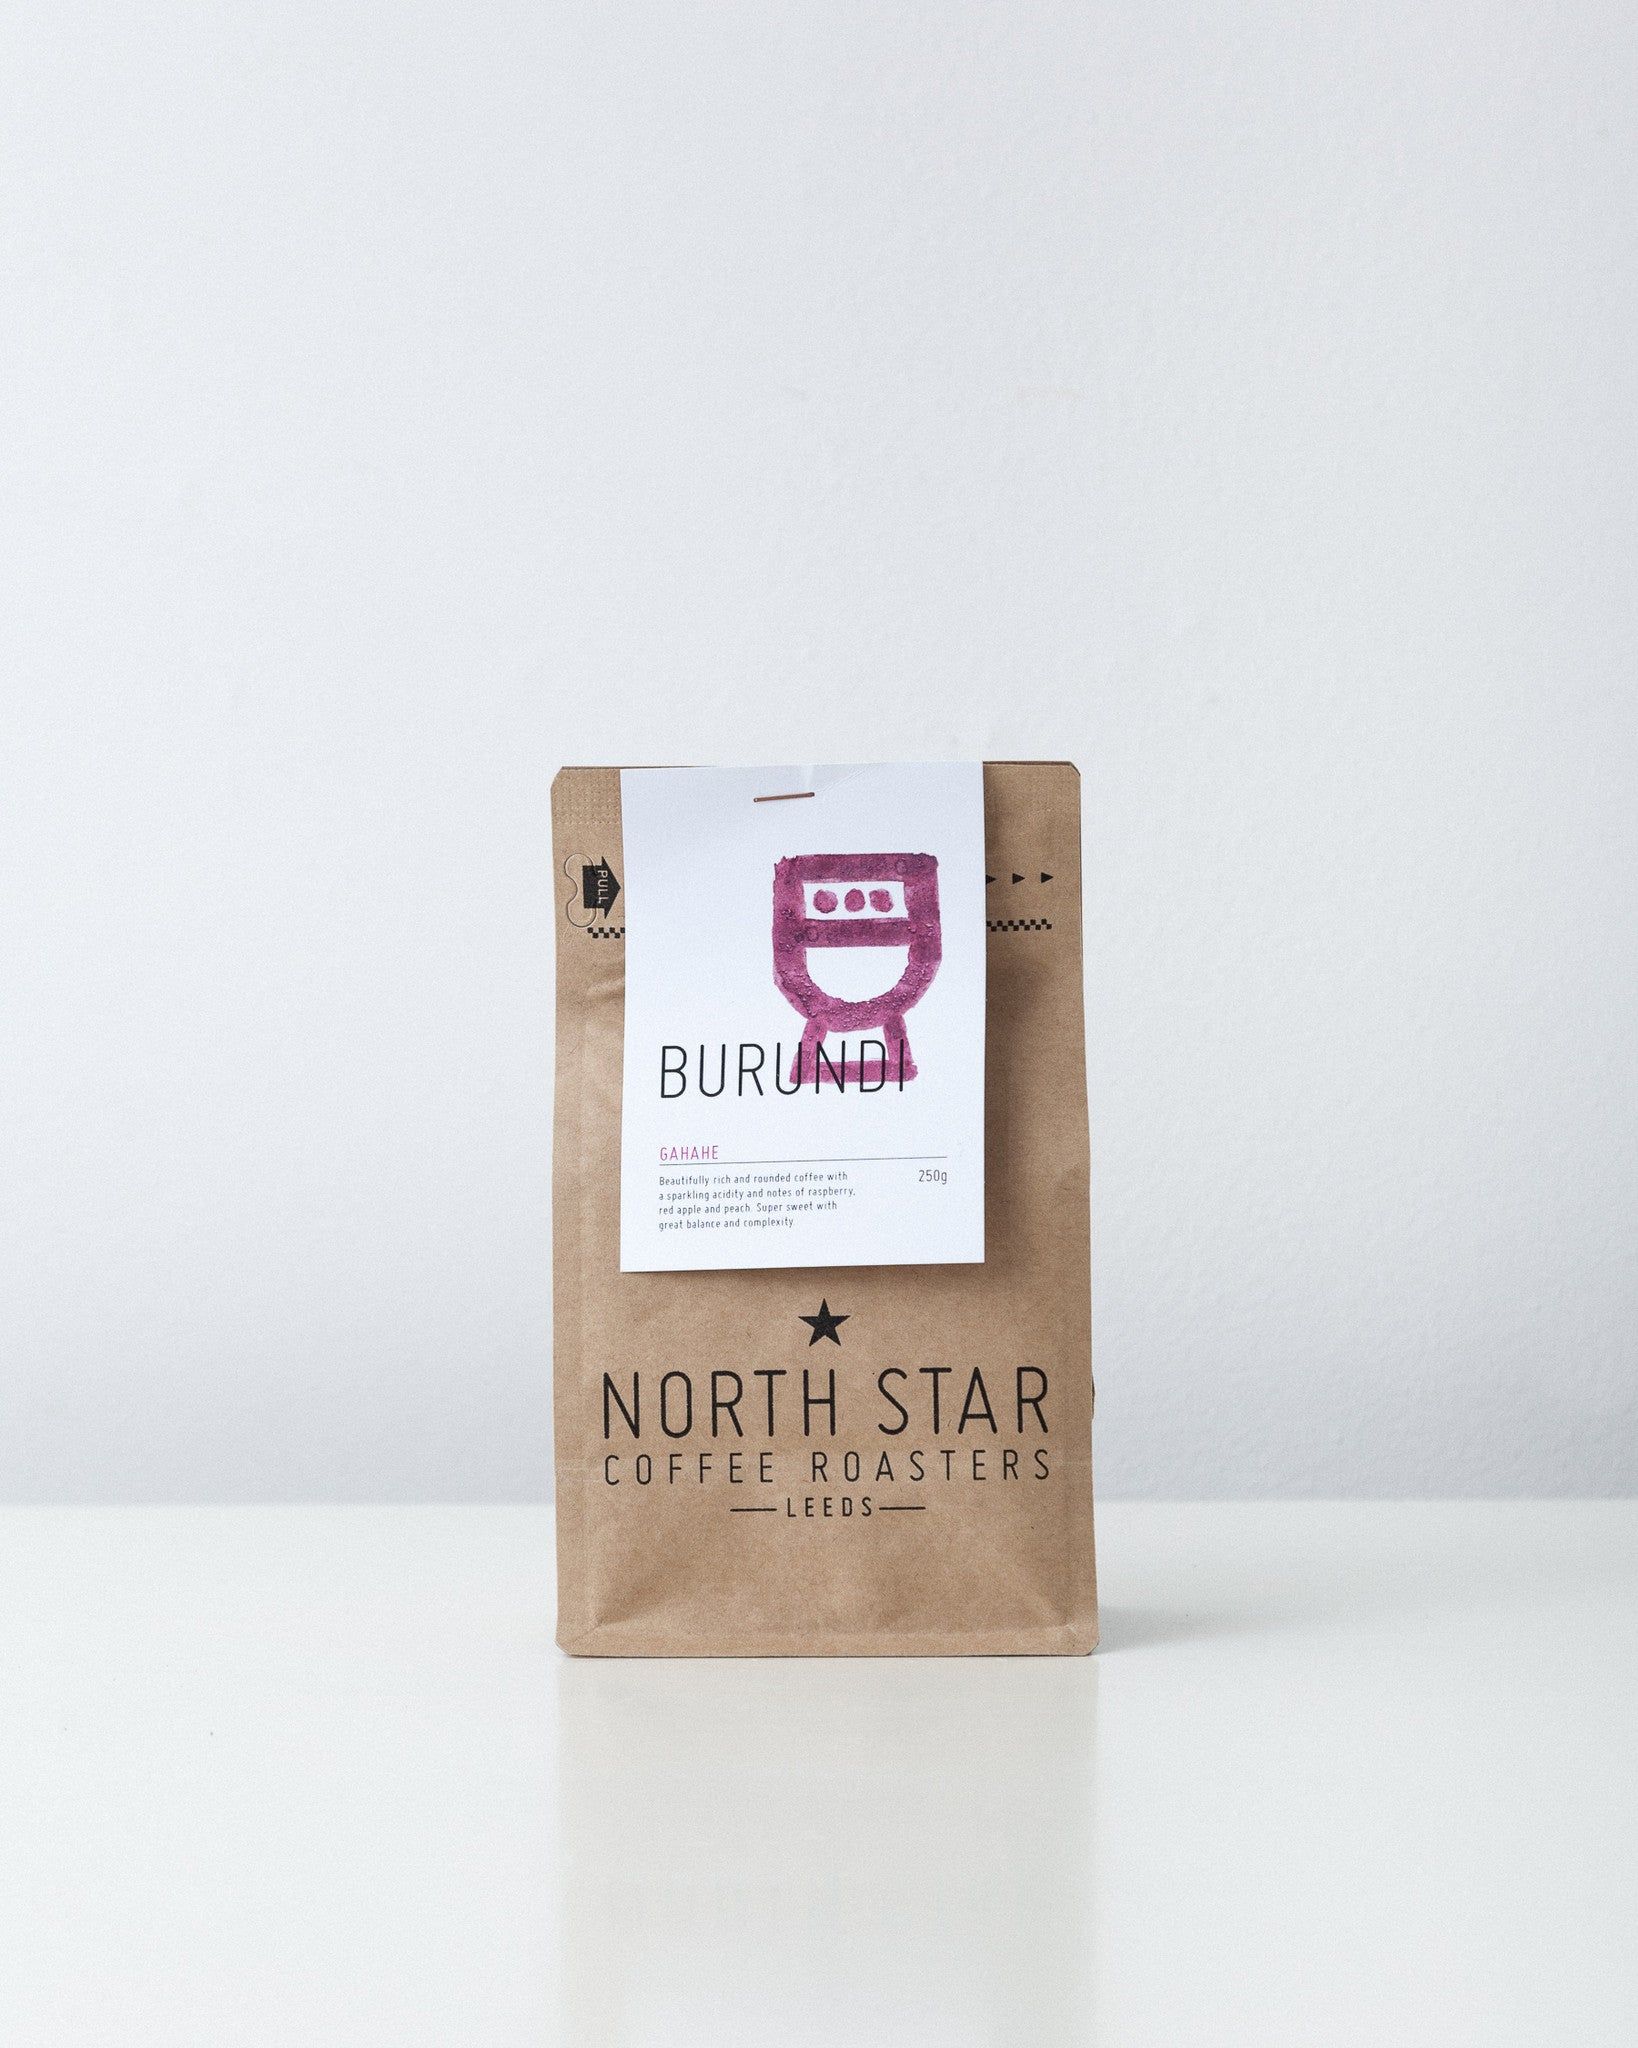 North Star Coffee Roasters Burundi Gahahe Coffee - Ground